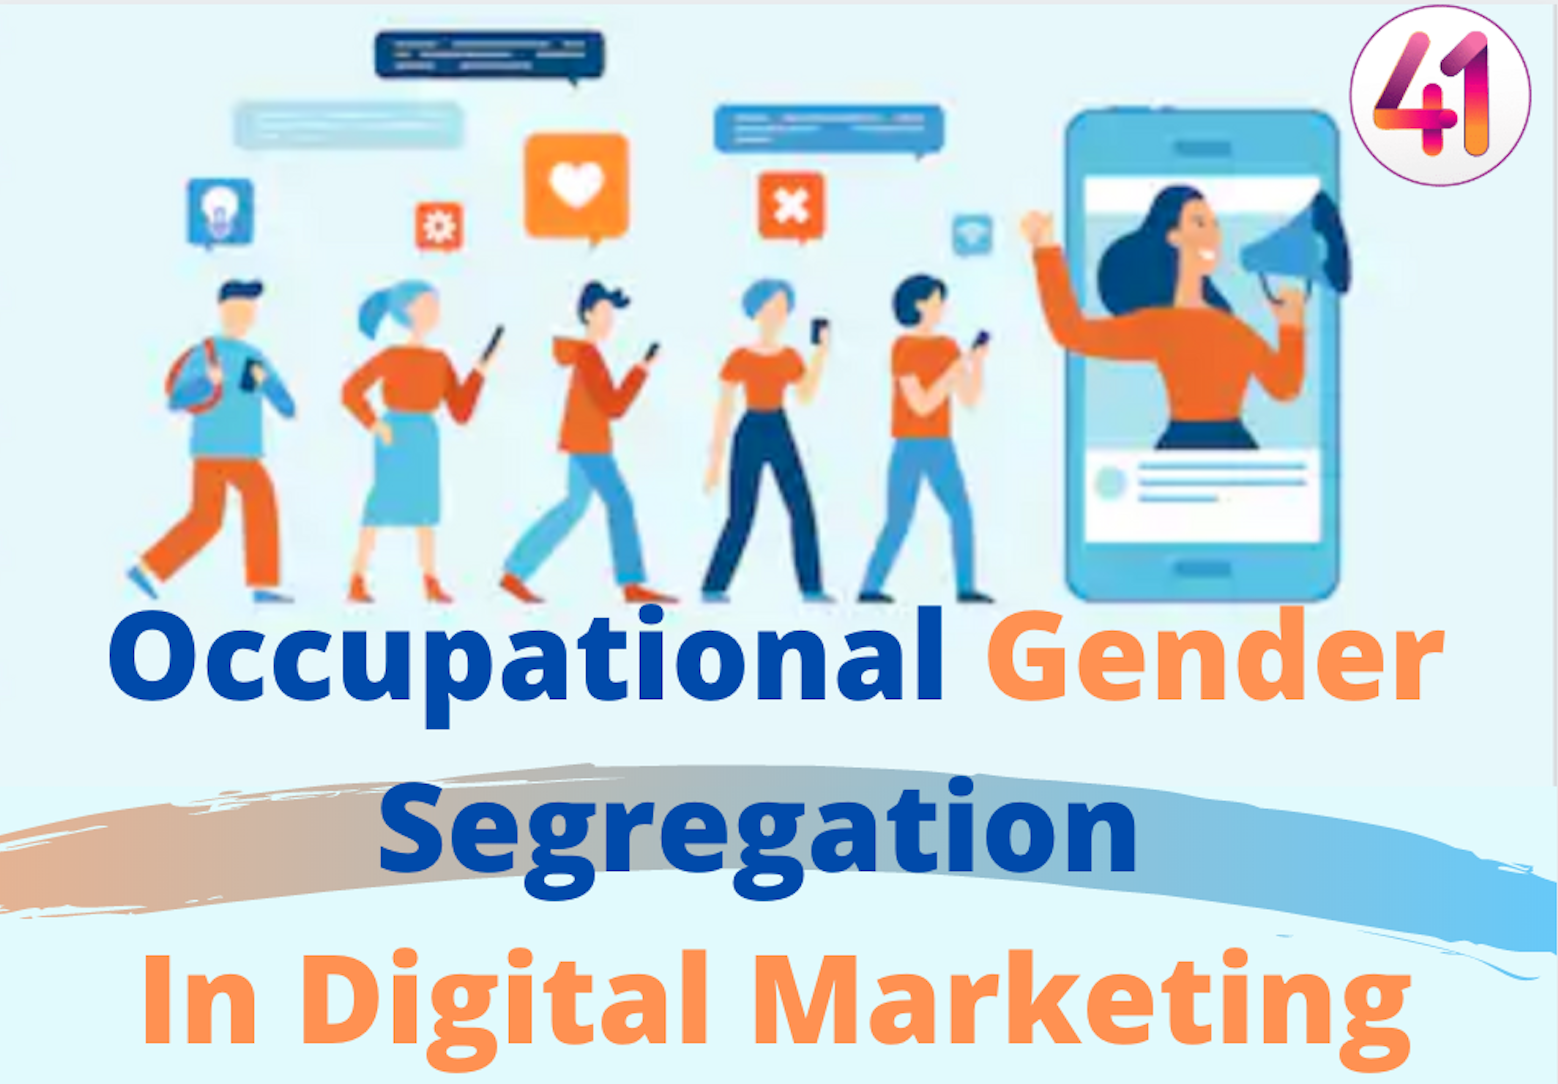 Occupational Gender Segregation